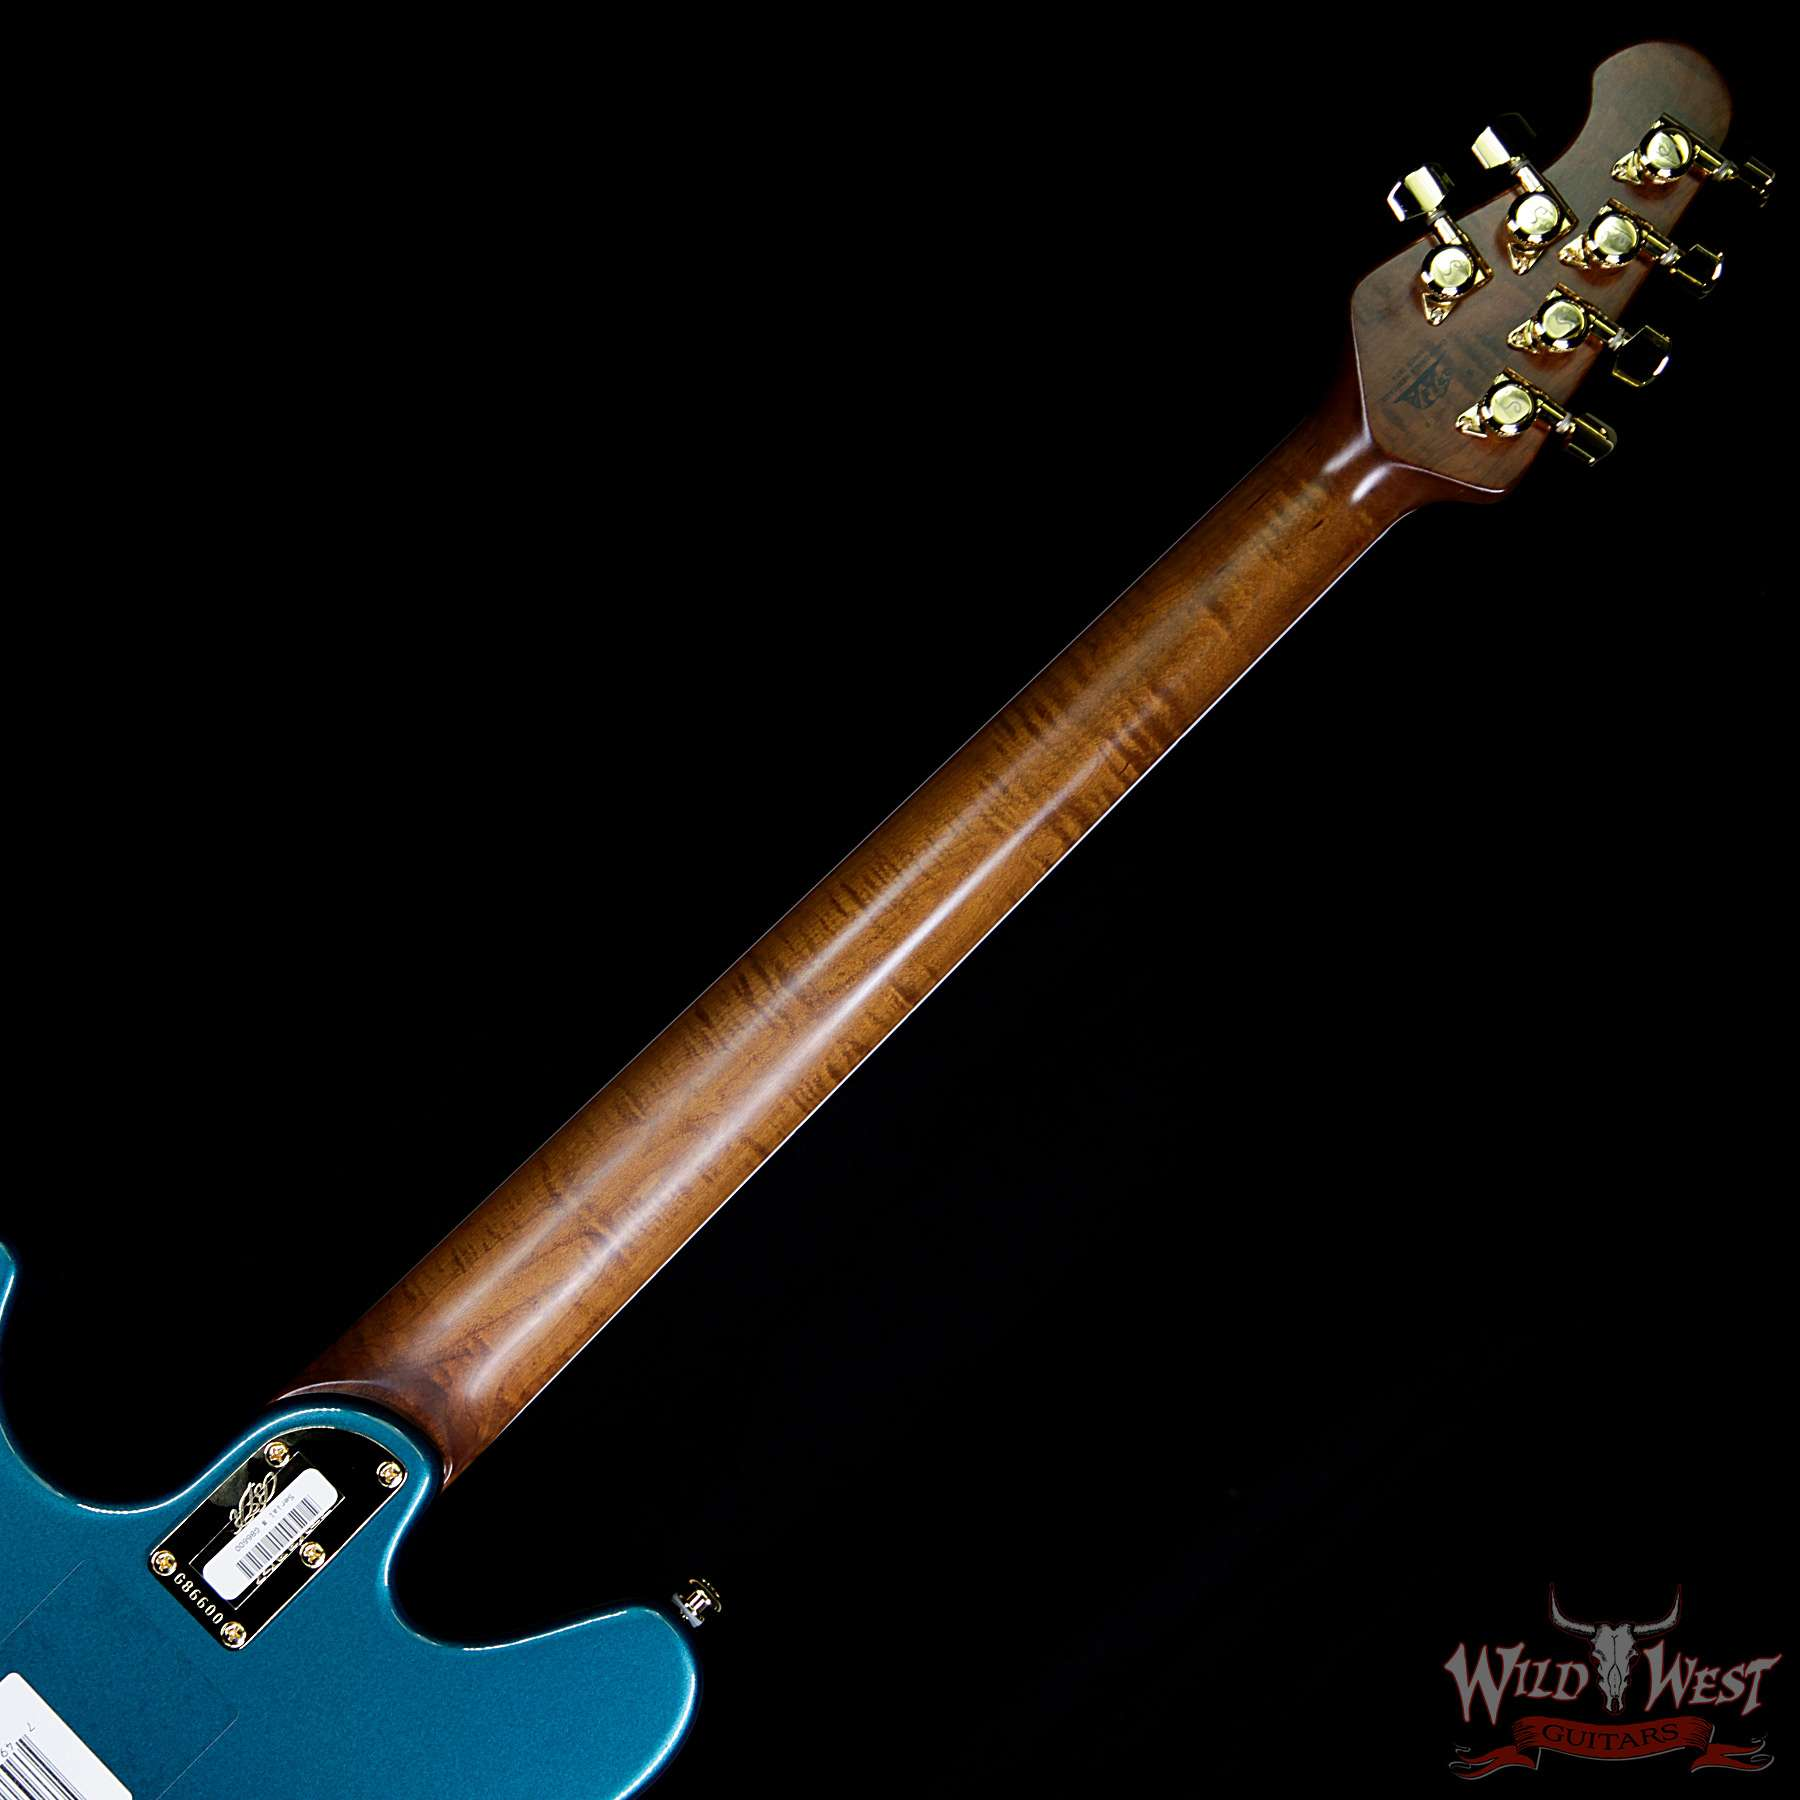 Ernie Ball Music Man Bfr Limited 39 Of 63 Valentine Rosewood Board Roasted Flame Maple Neck Pine Green